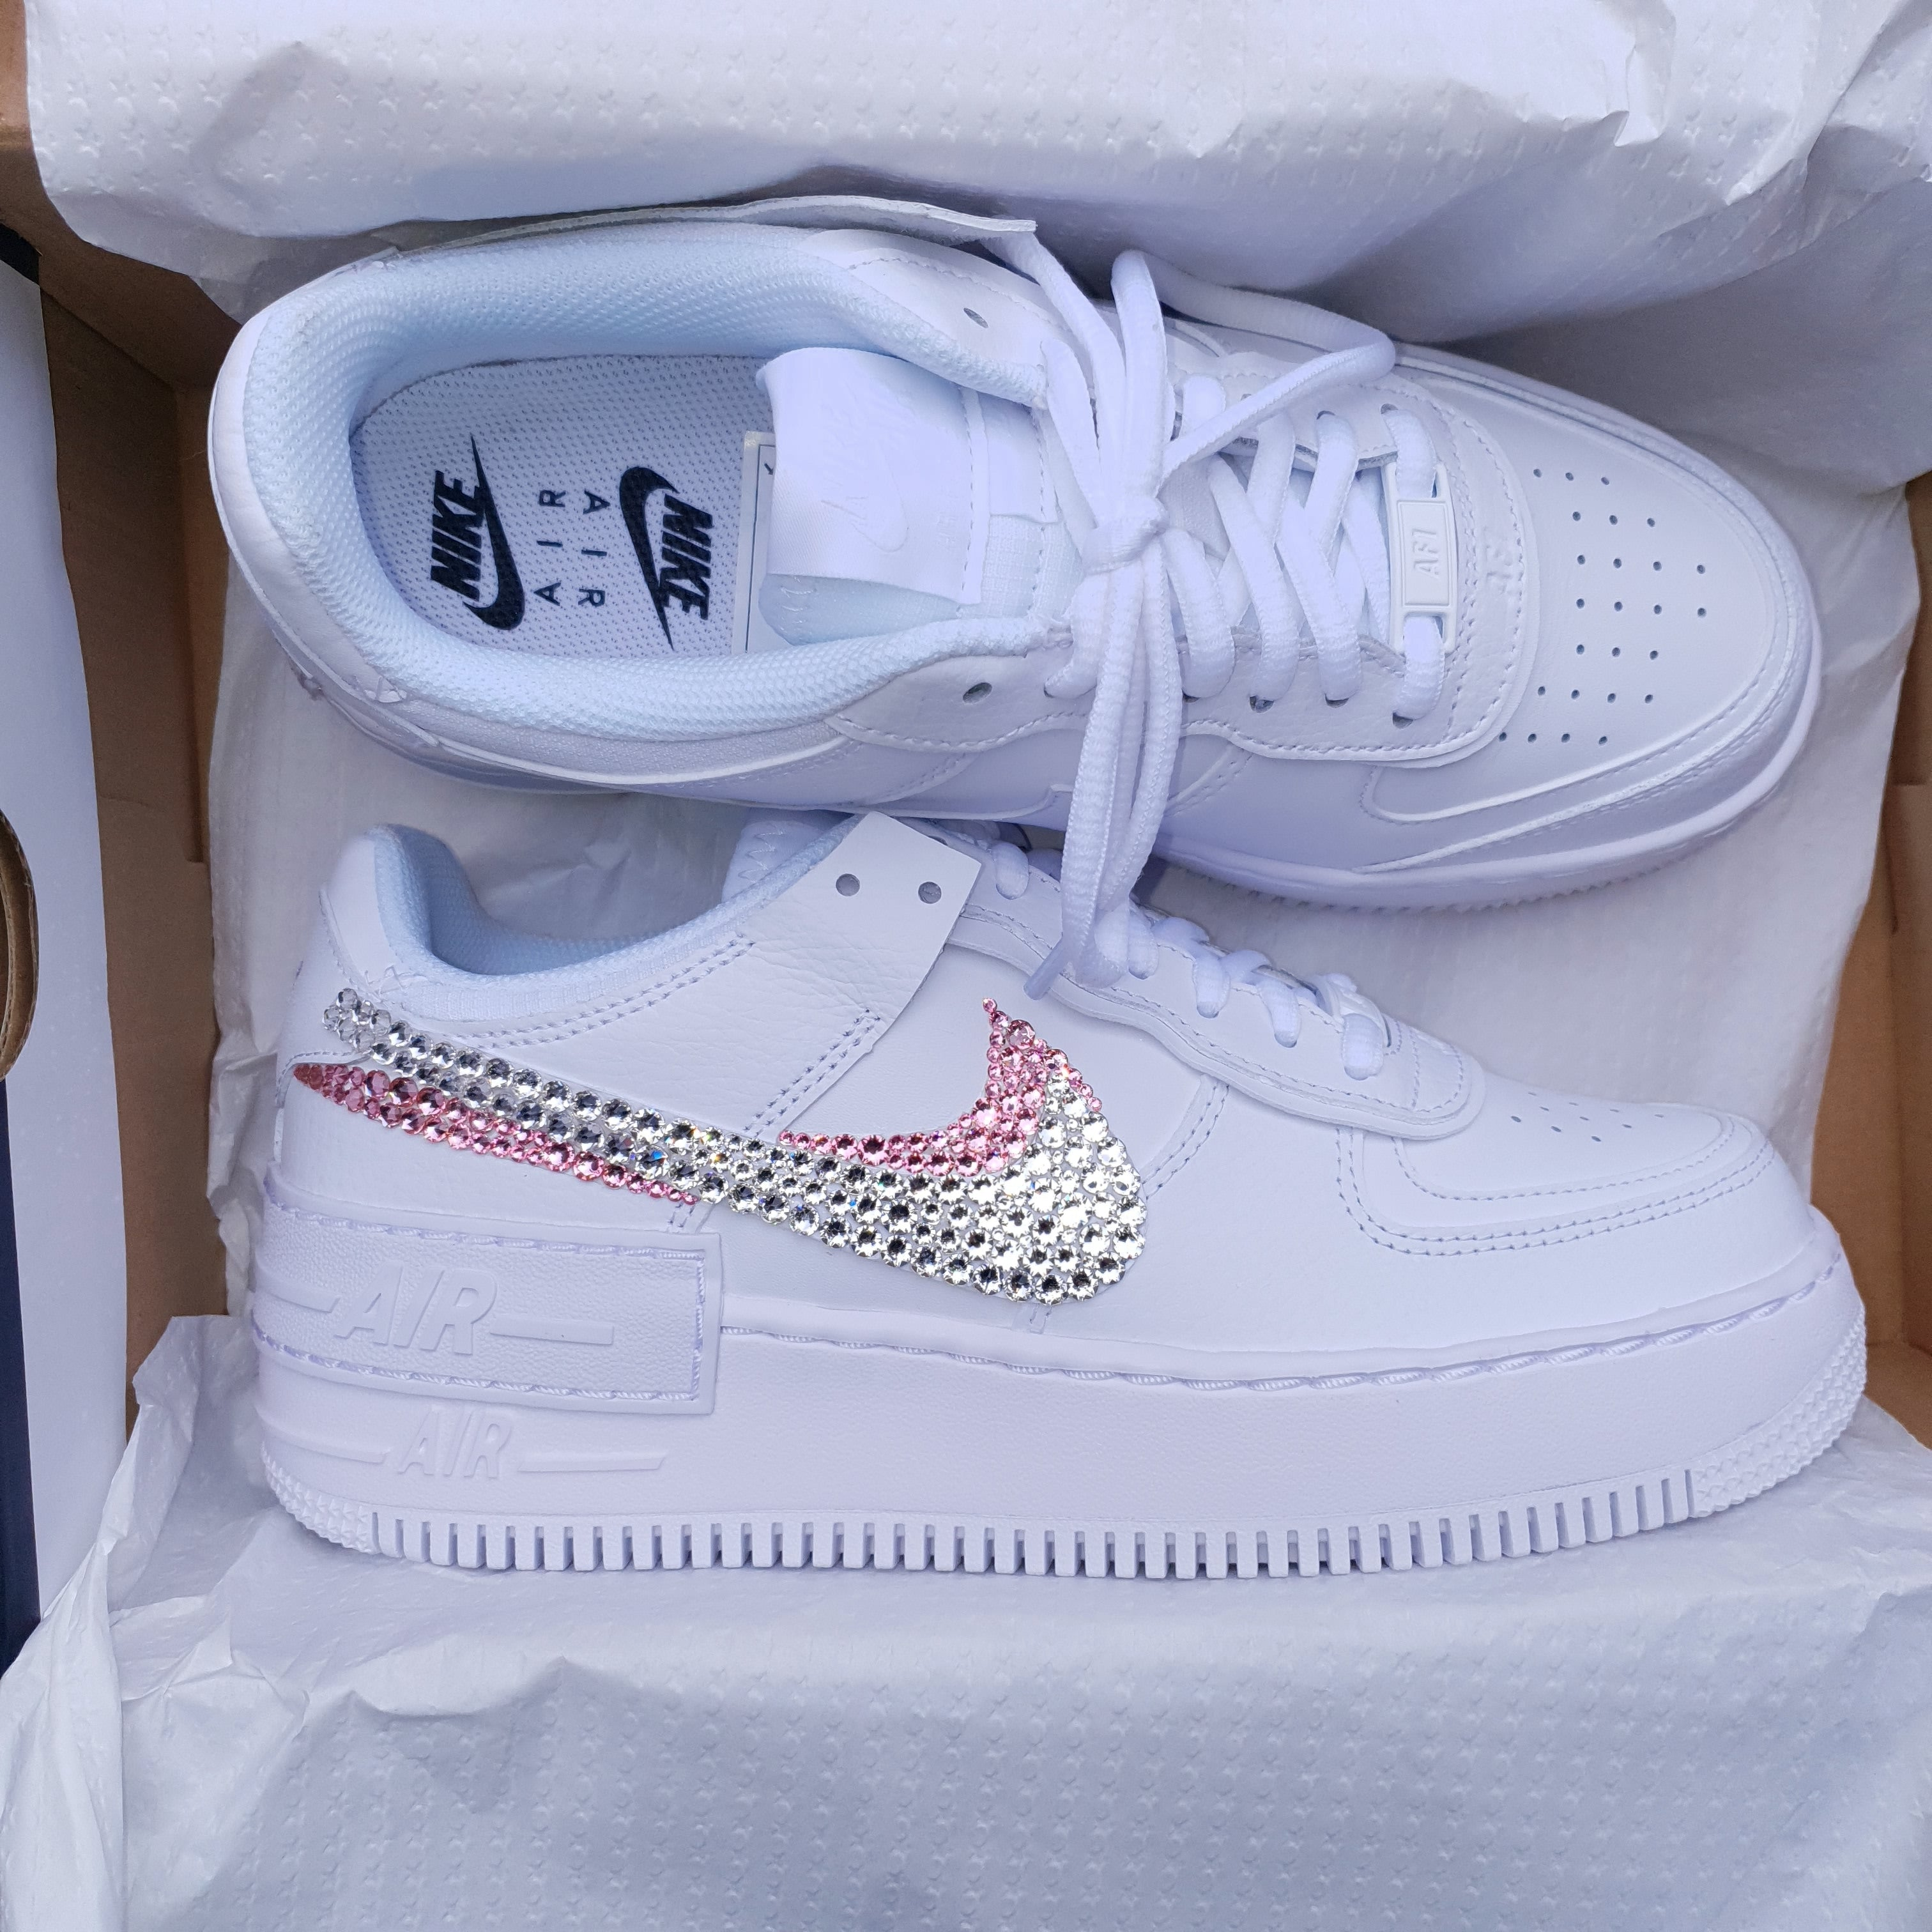 Nike Air Force 1 Shadow Women's Sneakers Pale Pink Red